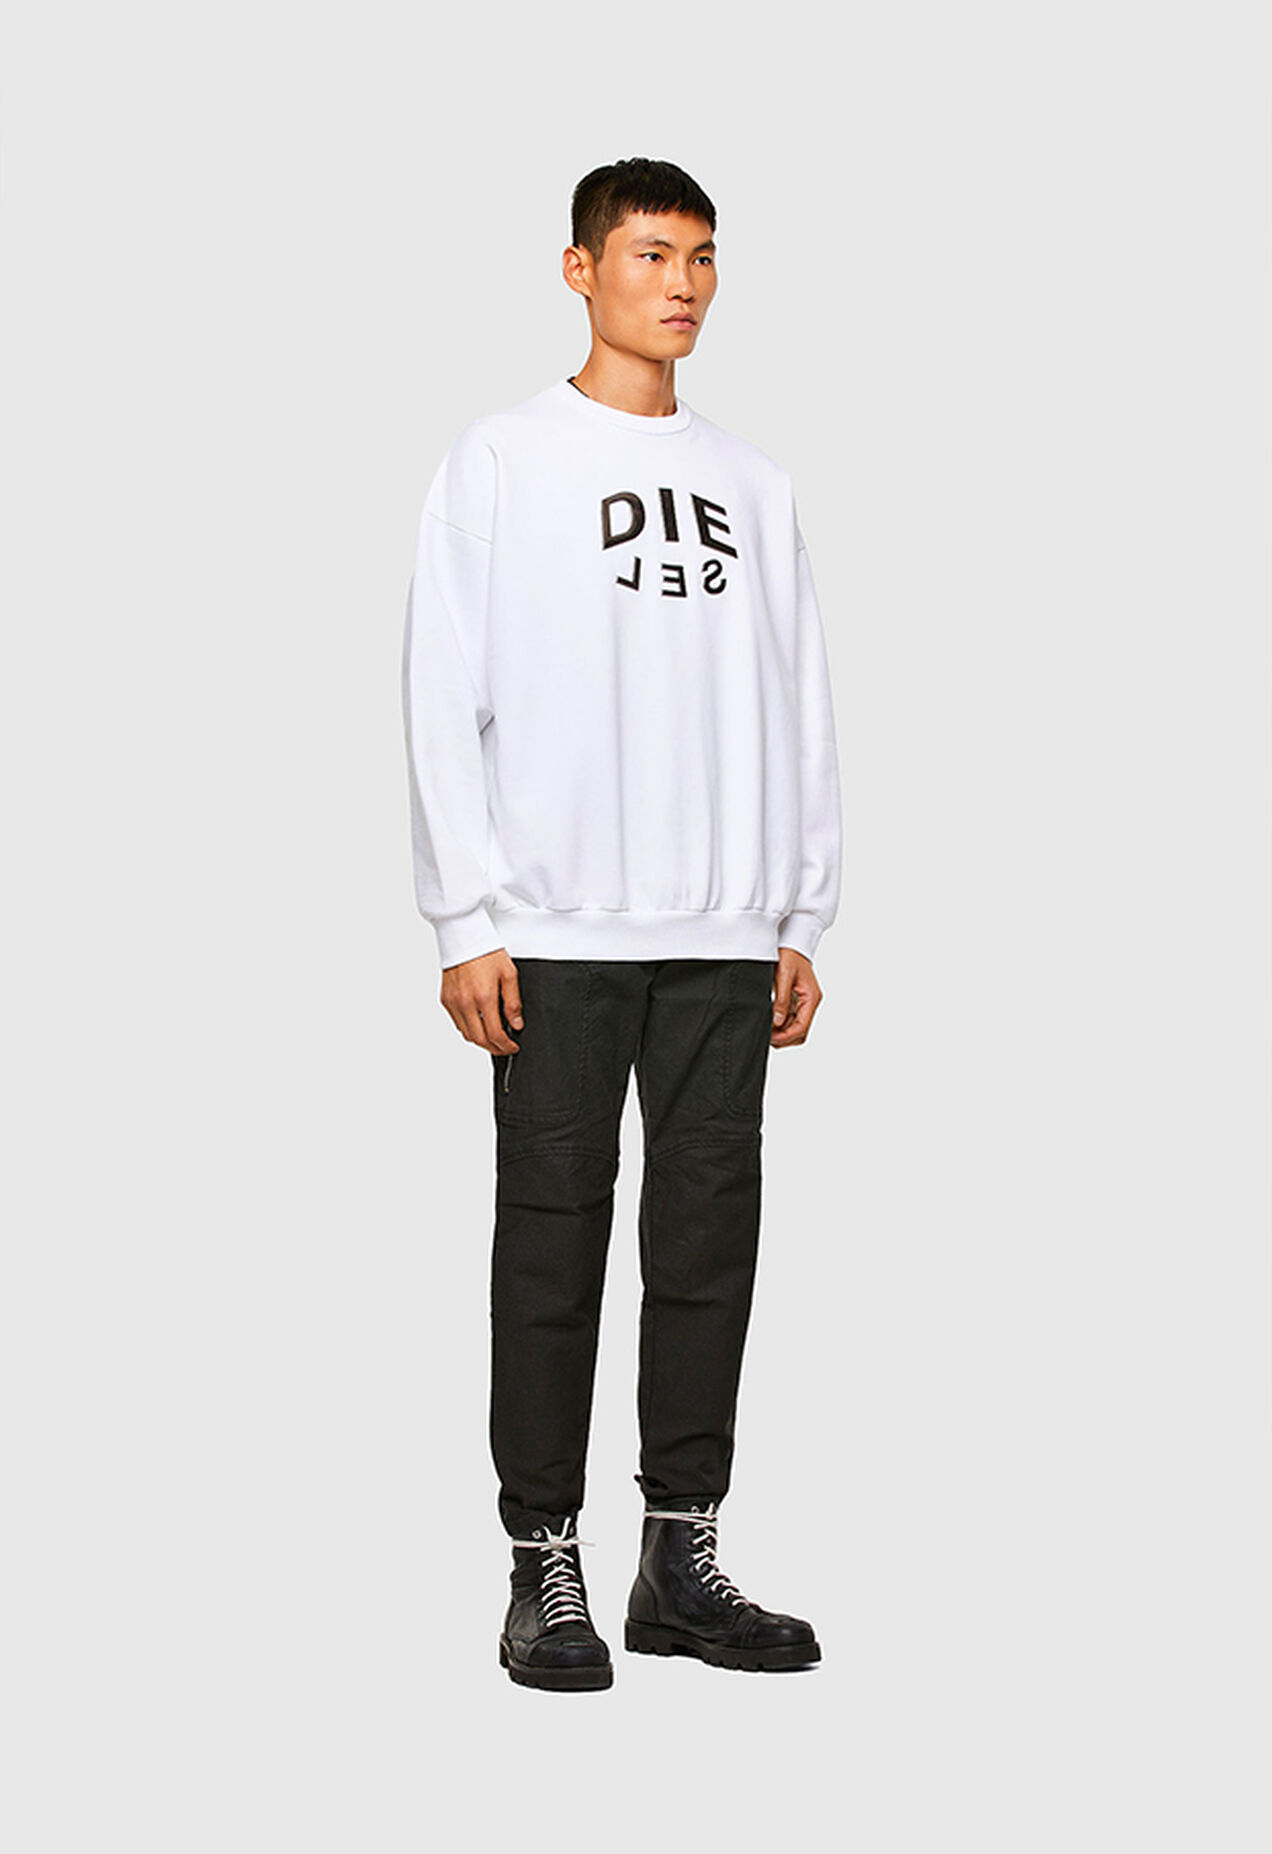 https://be.diesel.com/dw/image/v2/BBLG_PRD/on/demandware.static/-/Library-Sites-DieselMFSharedLibrary/default/dwbd218fca/CATEGORYOV/2x2_s-mart_sweatshirt_A01711_0IAEG_100_C.jpg?sw=1272&sh=1854